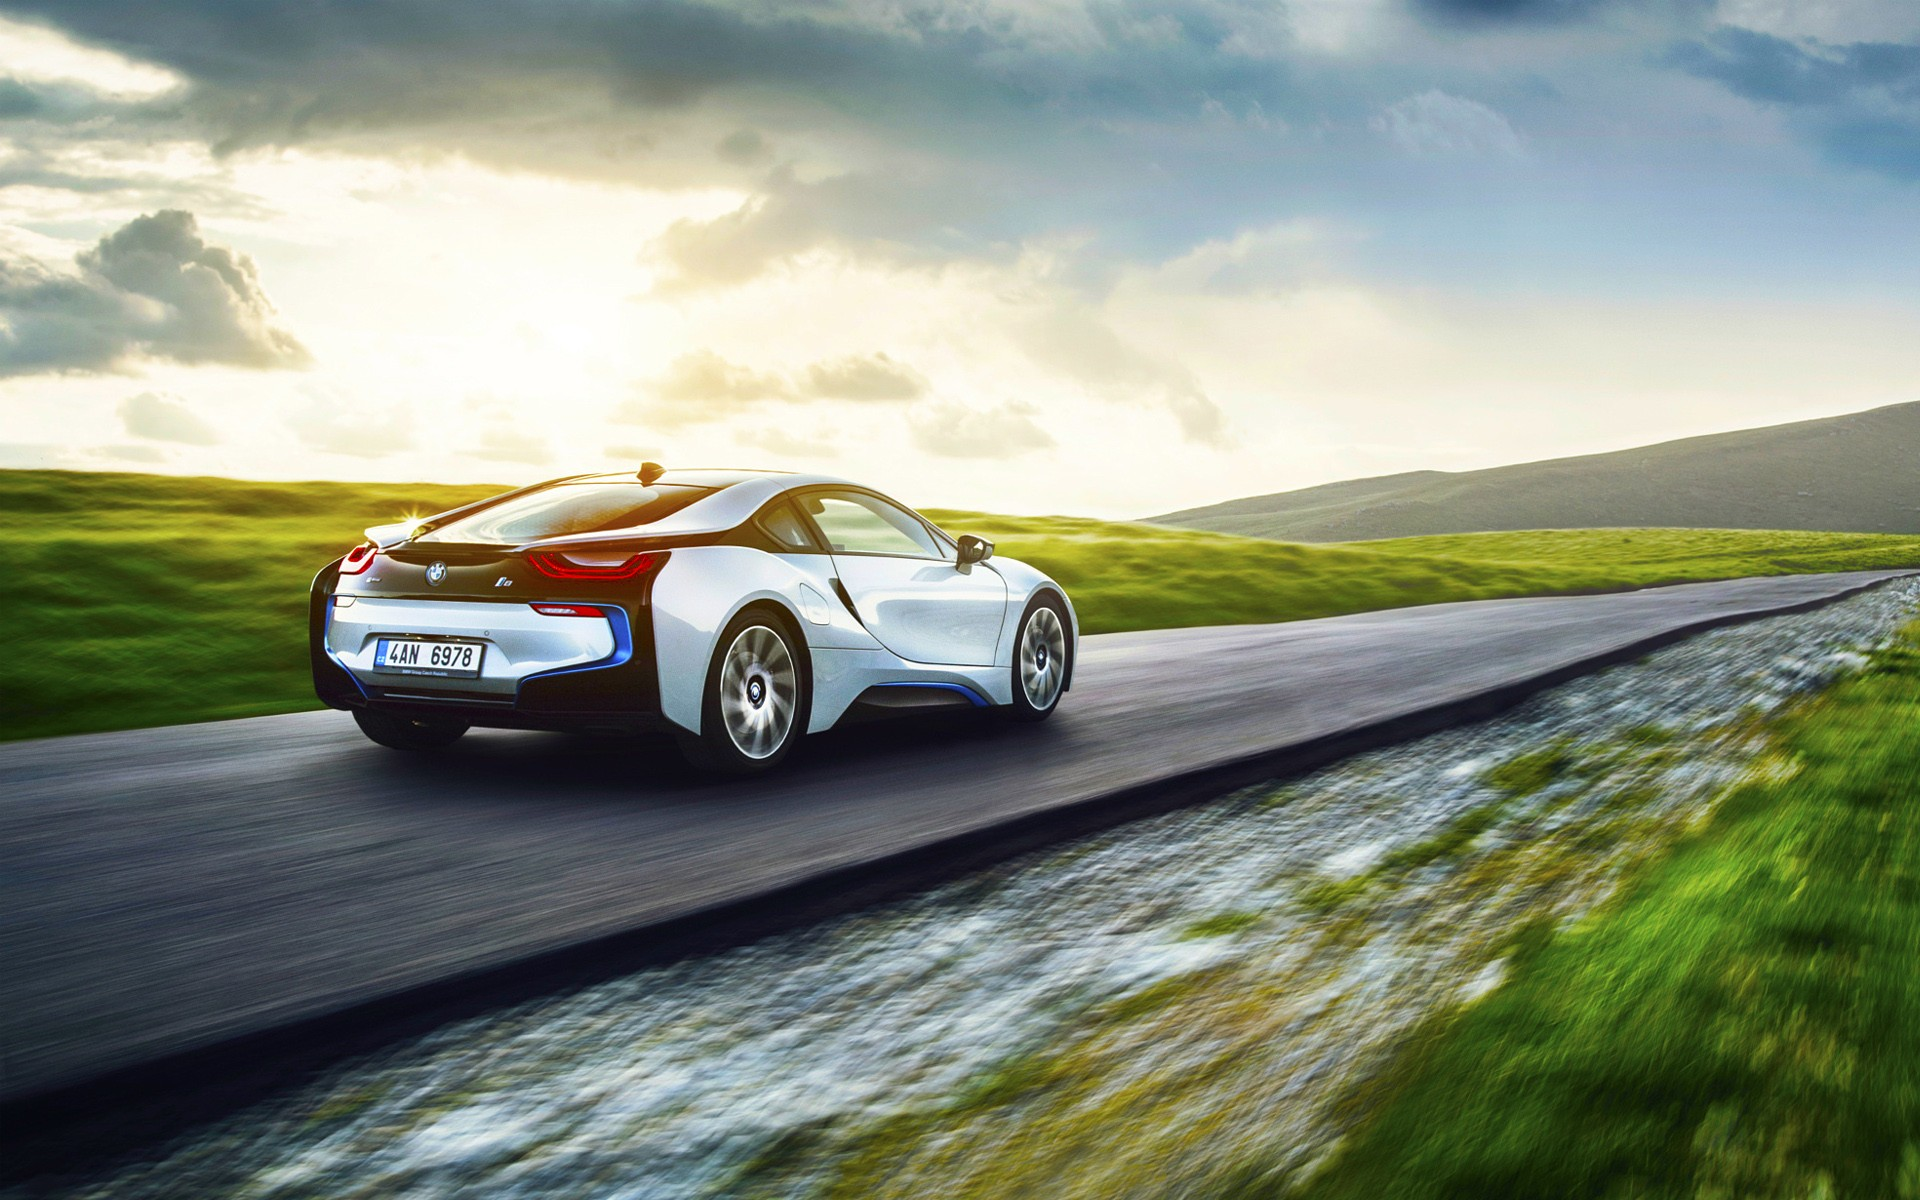 BMW i8 Back View Wallpaper | HD Car Wallpapers | ID #6006